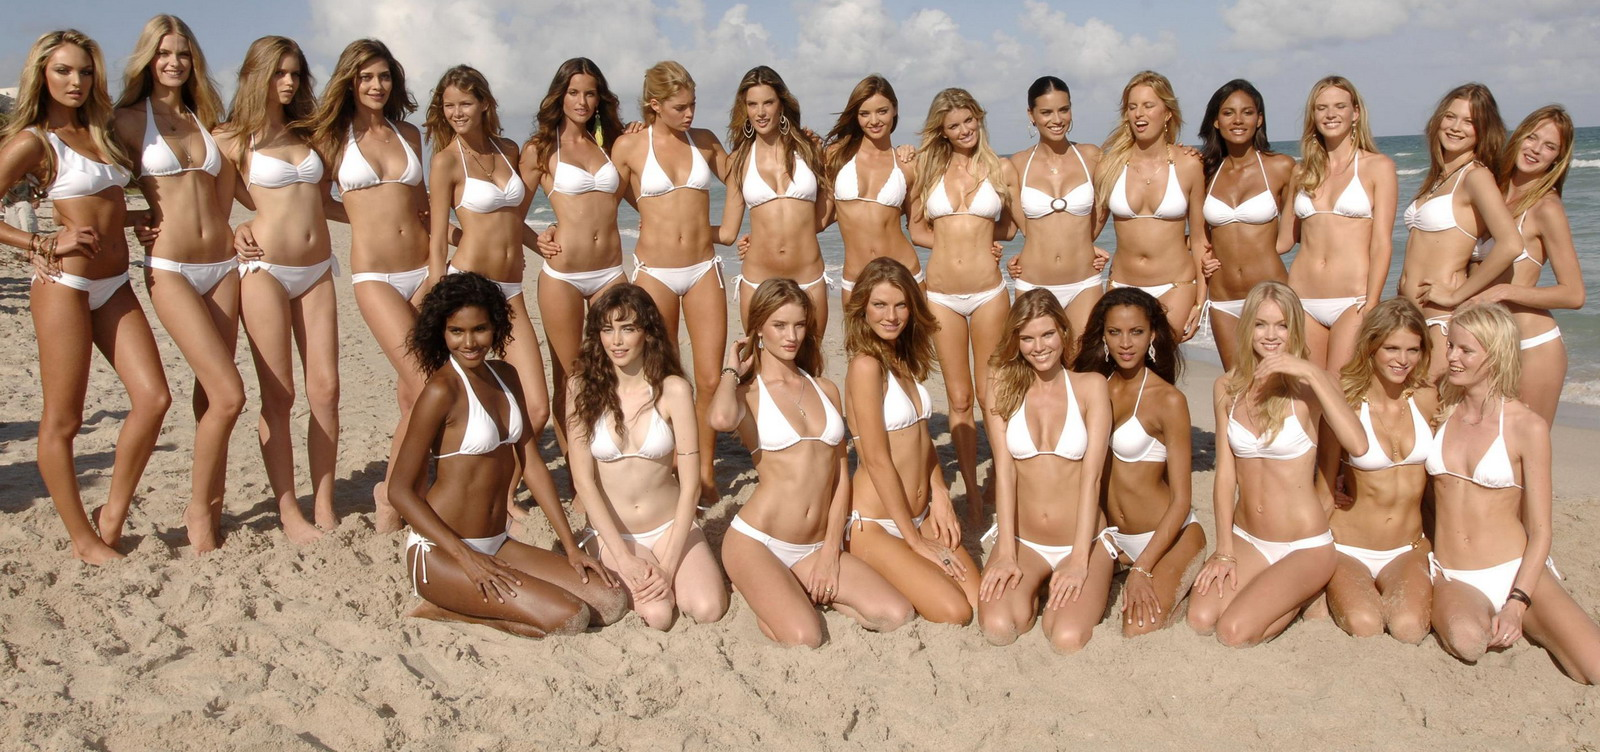 Victoria's Secret Models - v bikinách!